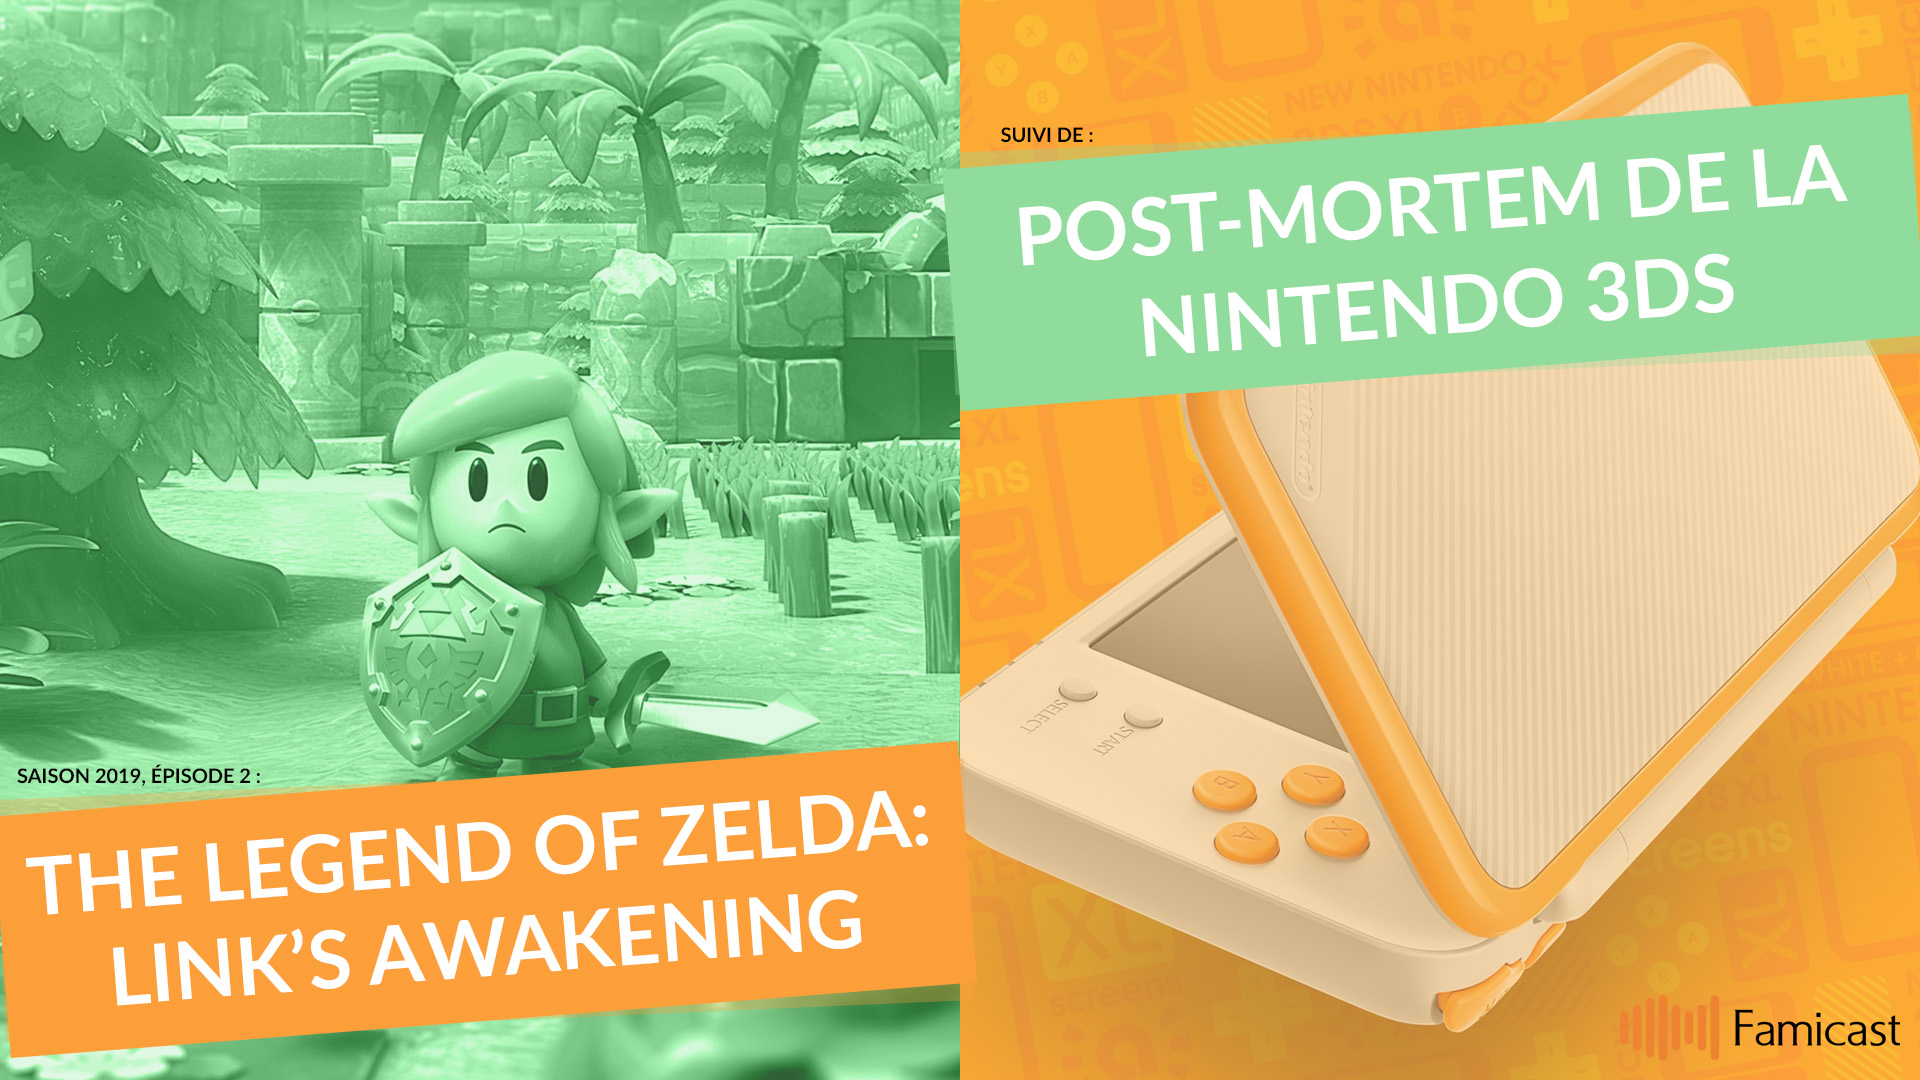 Famicast 2019, épisode 2 — The Legend of Zelda: Link's Awakening / Post-mortem de la 3DS